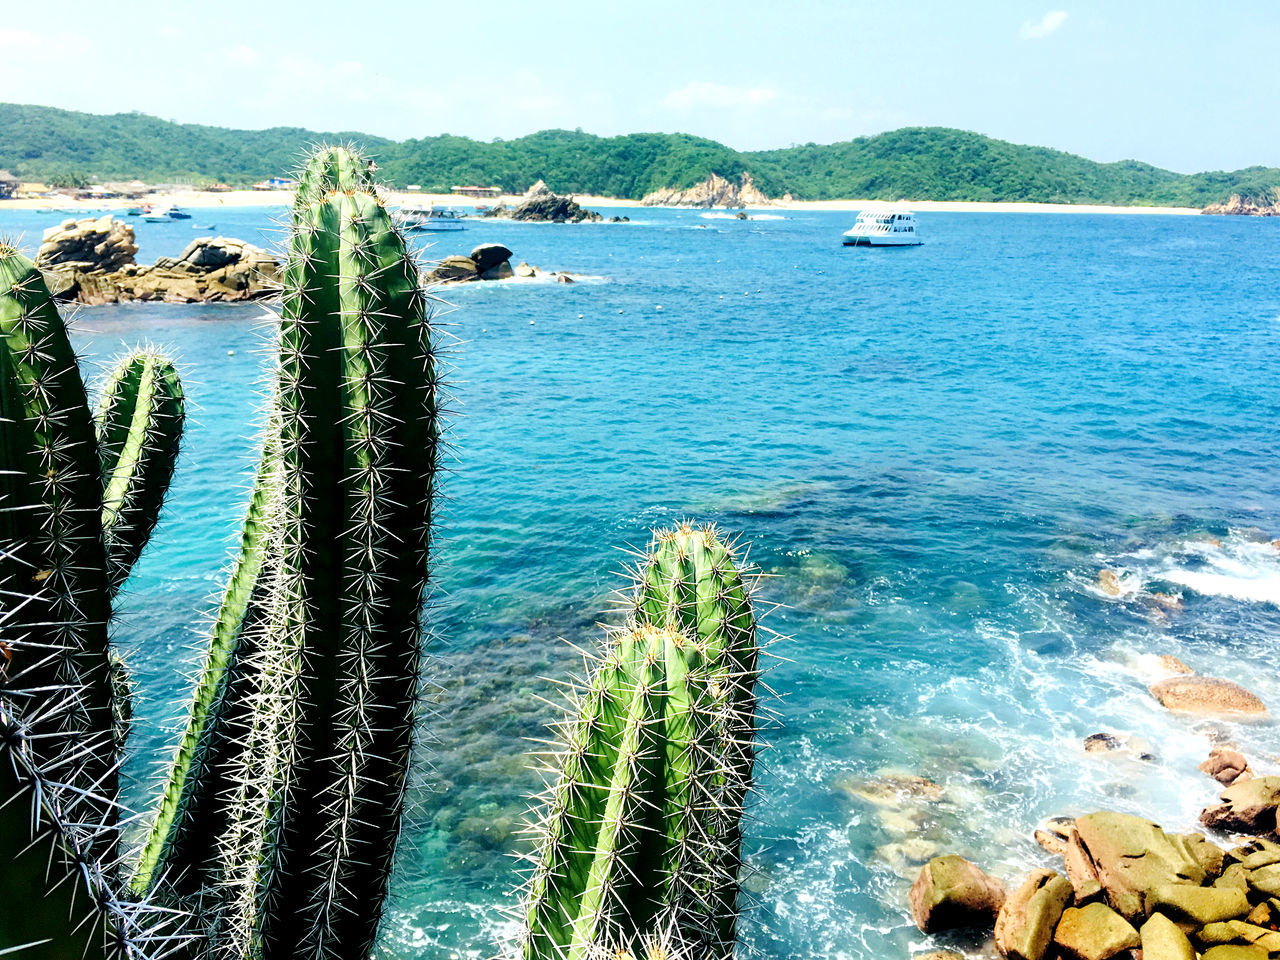 water, beauty in nature, sea, scenics - nature, nature, tranquility, plant, tranquil scene, land, day, rock, beach, sky, no people, rock - object, solid, mountain, outdoors, growth, turquoise colored, bay